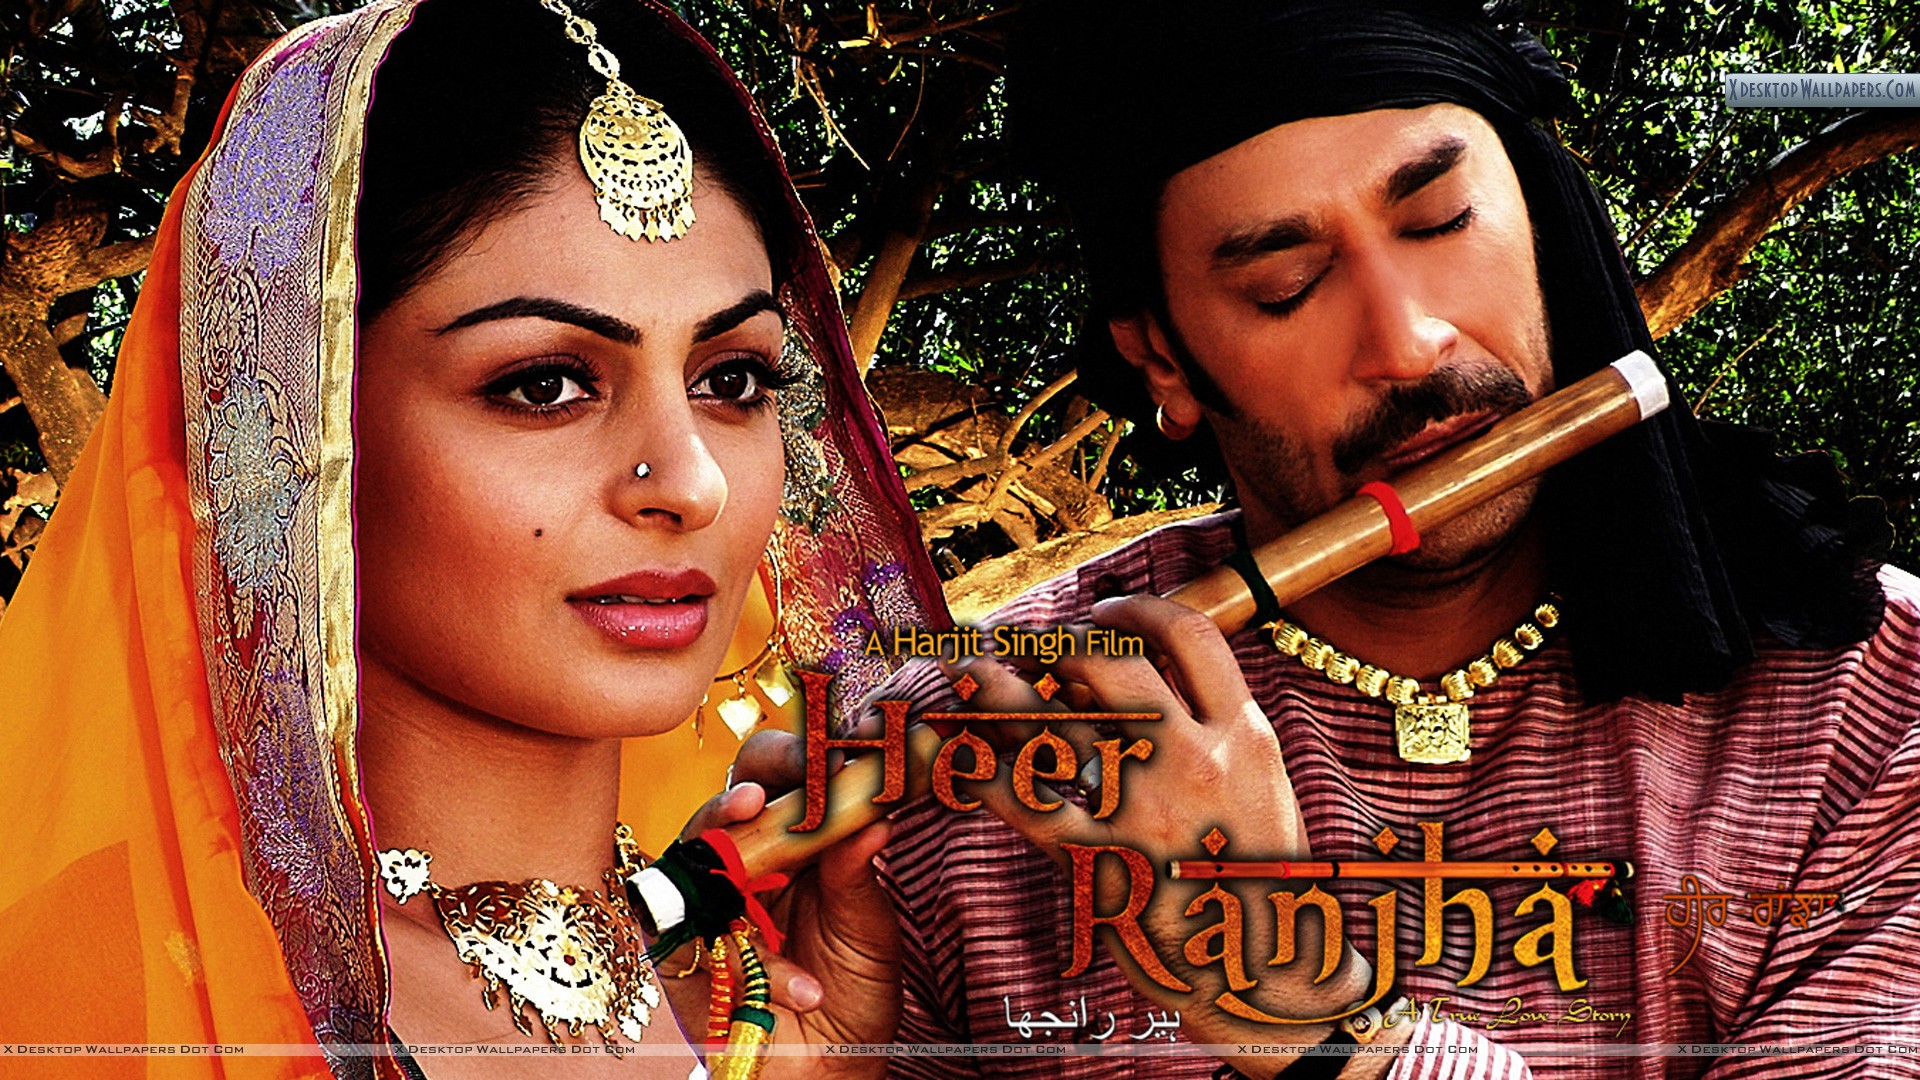 download heer ranjha